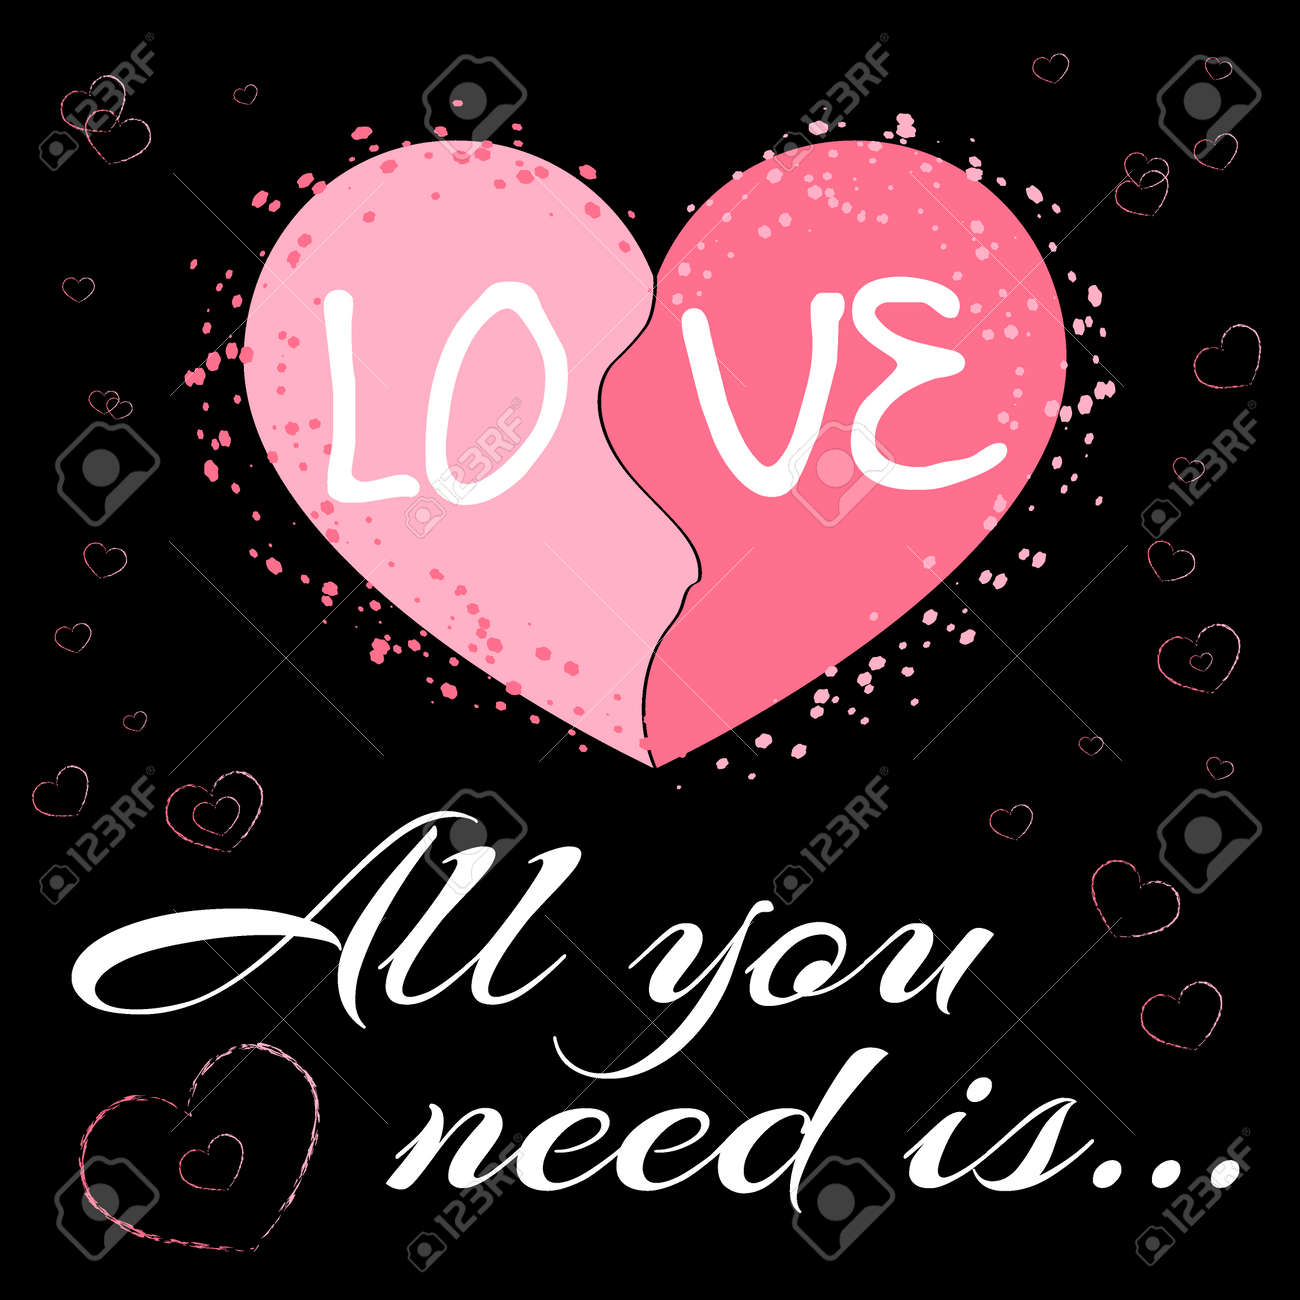 Exceptional All You Need Is Love. Romance Quote Text With Heart Typography Background.  Valentine Day